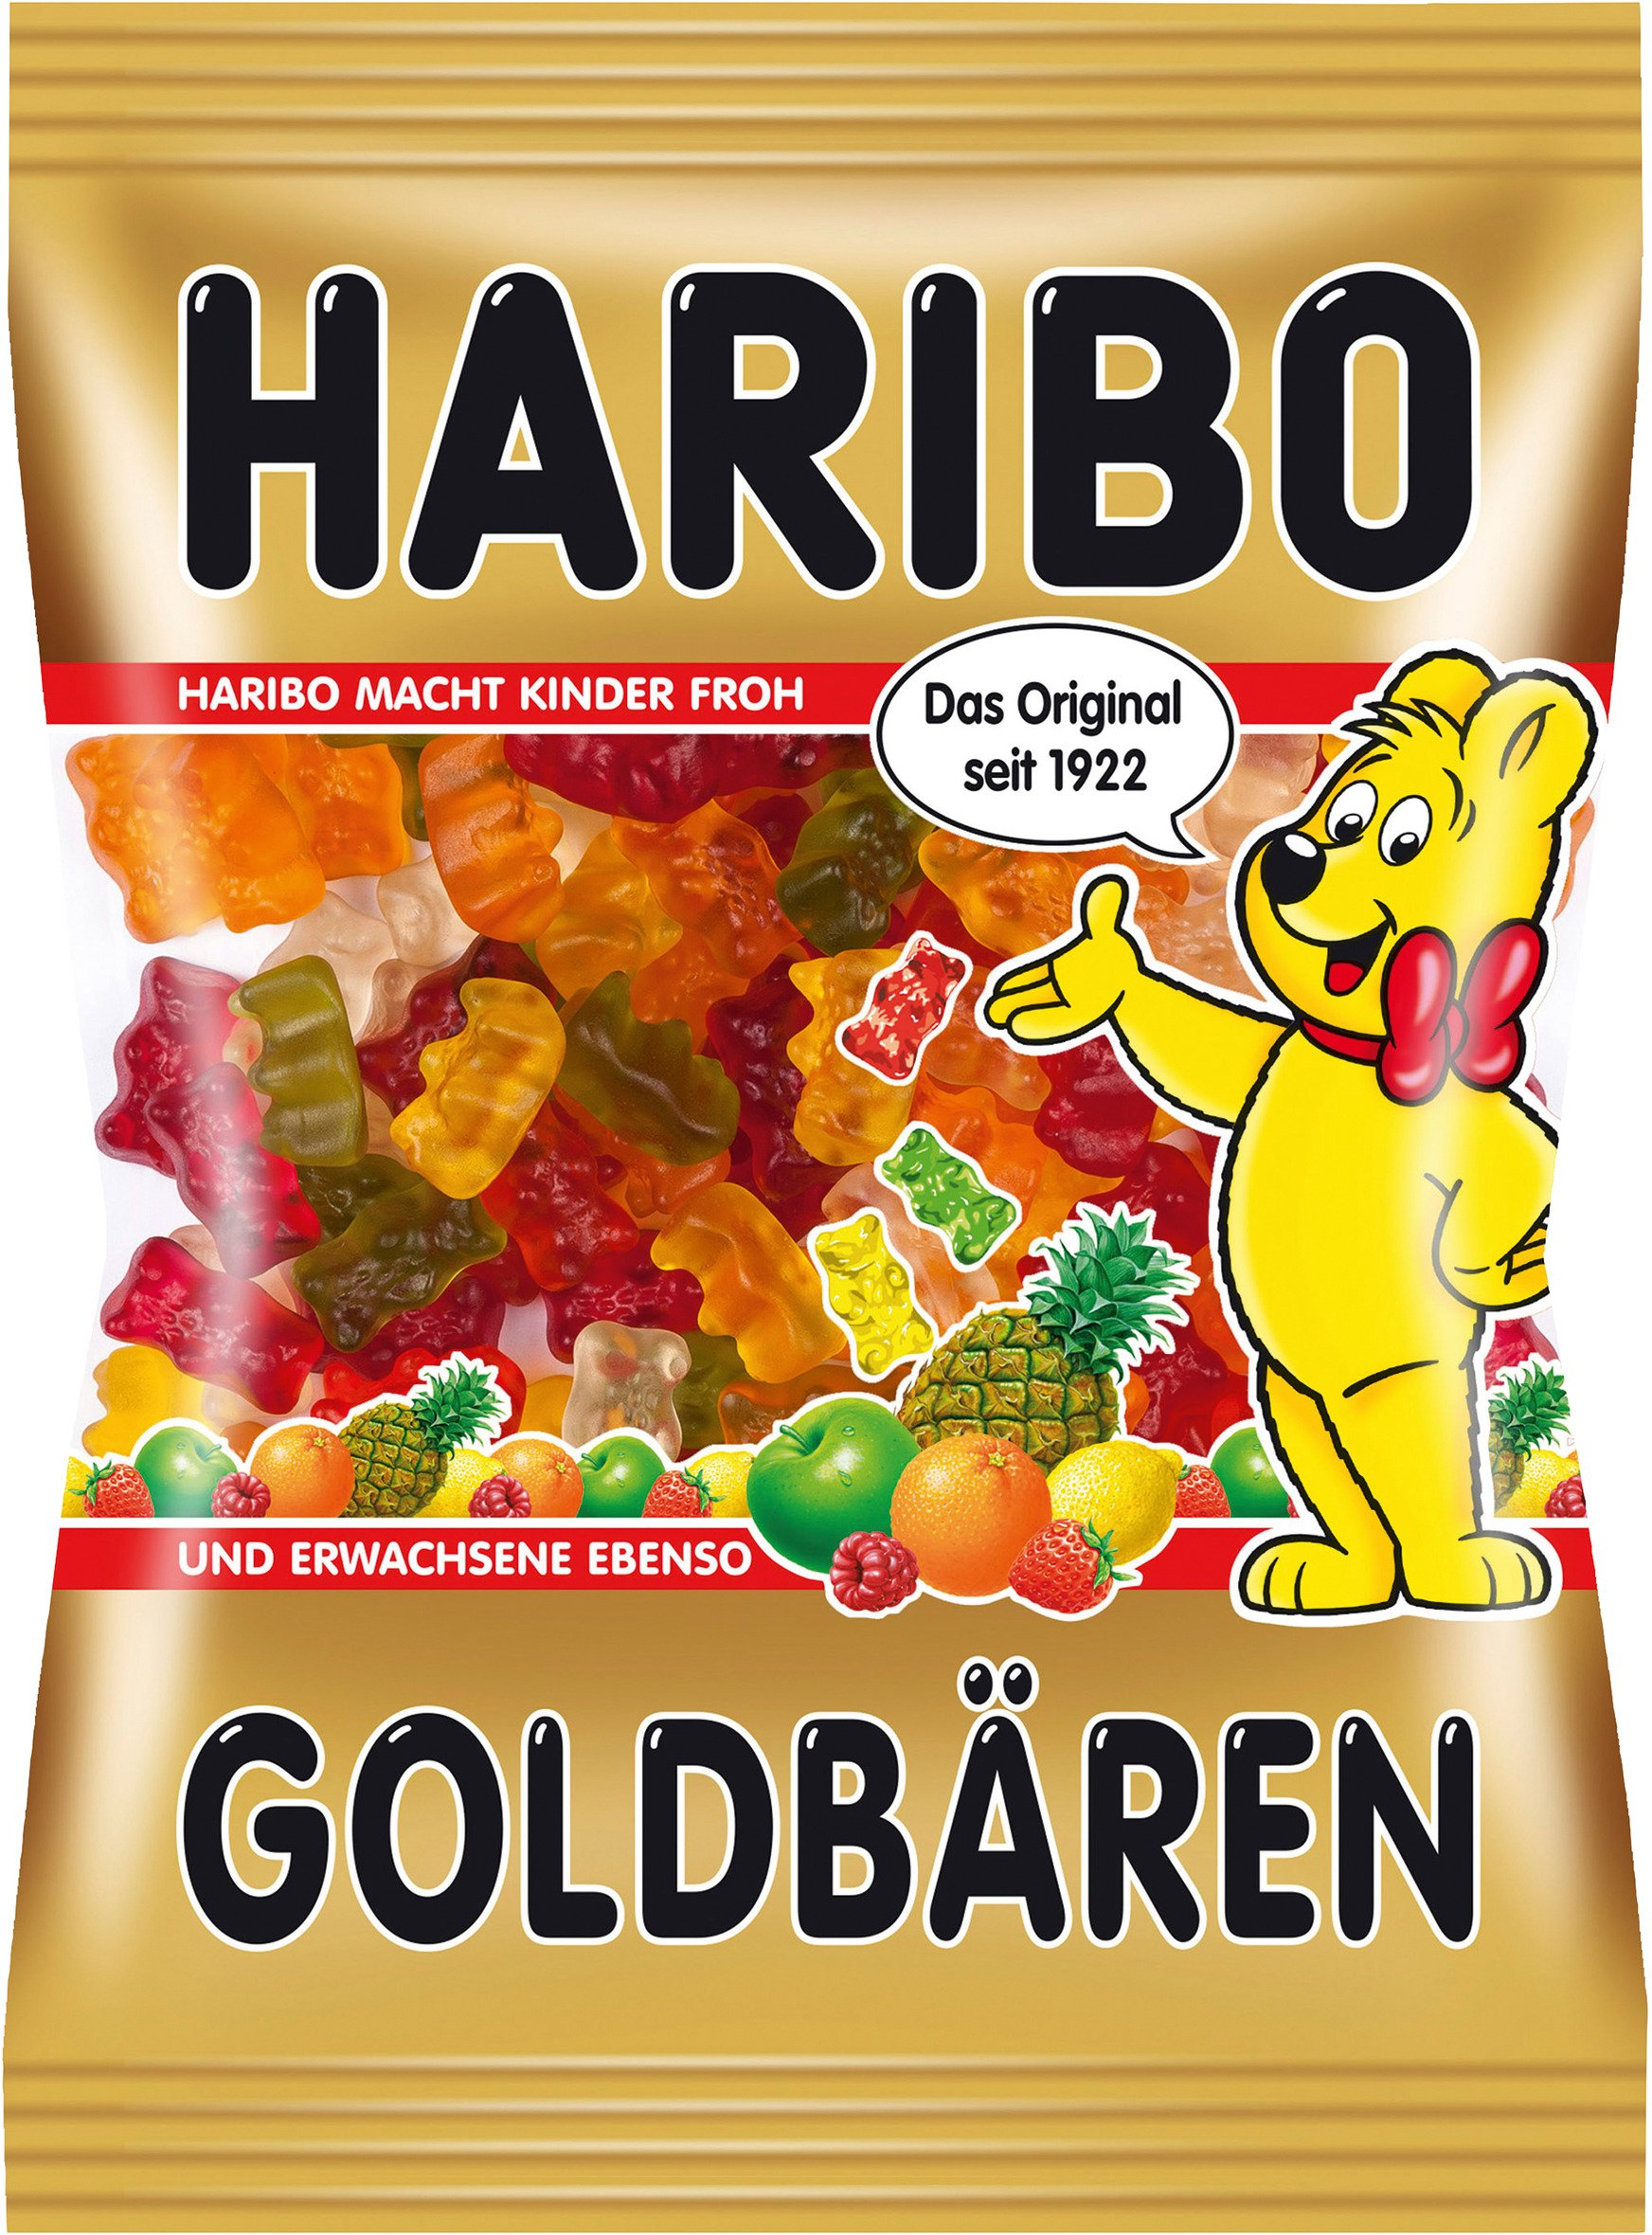 Haribo Goldbaren ( Gold Bears ) - Pack of 6 X 200 G by Haribo